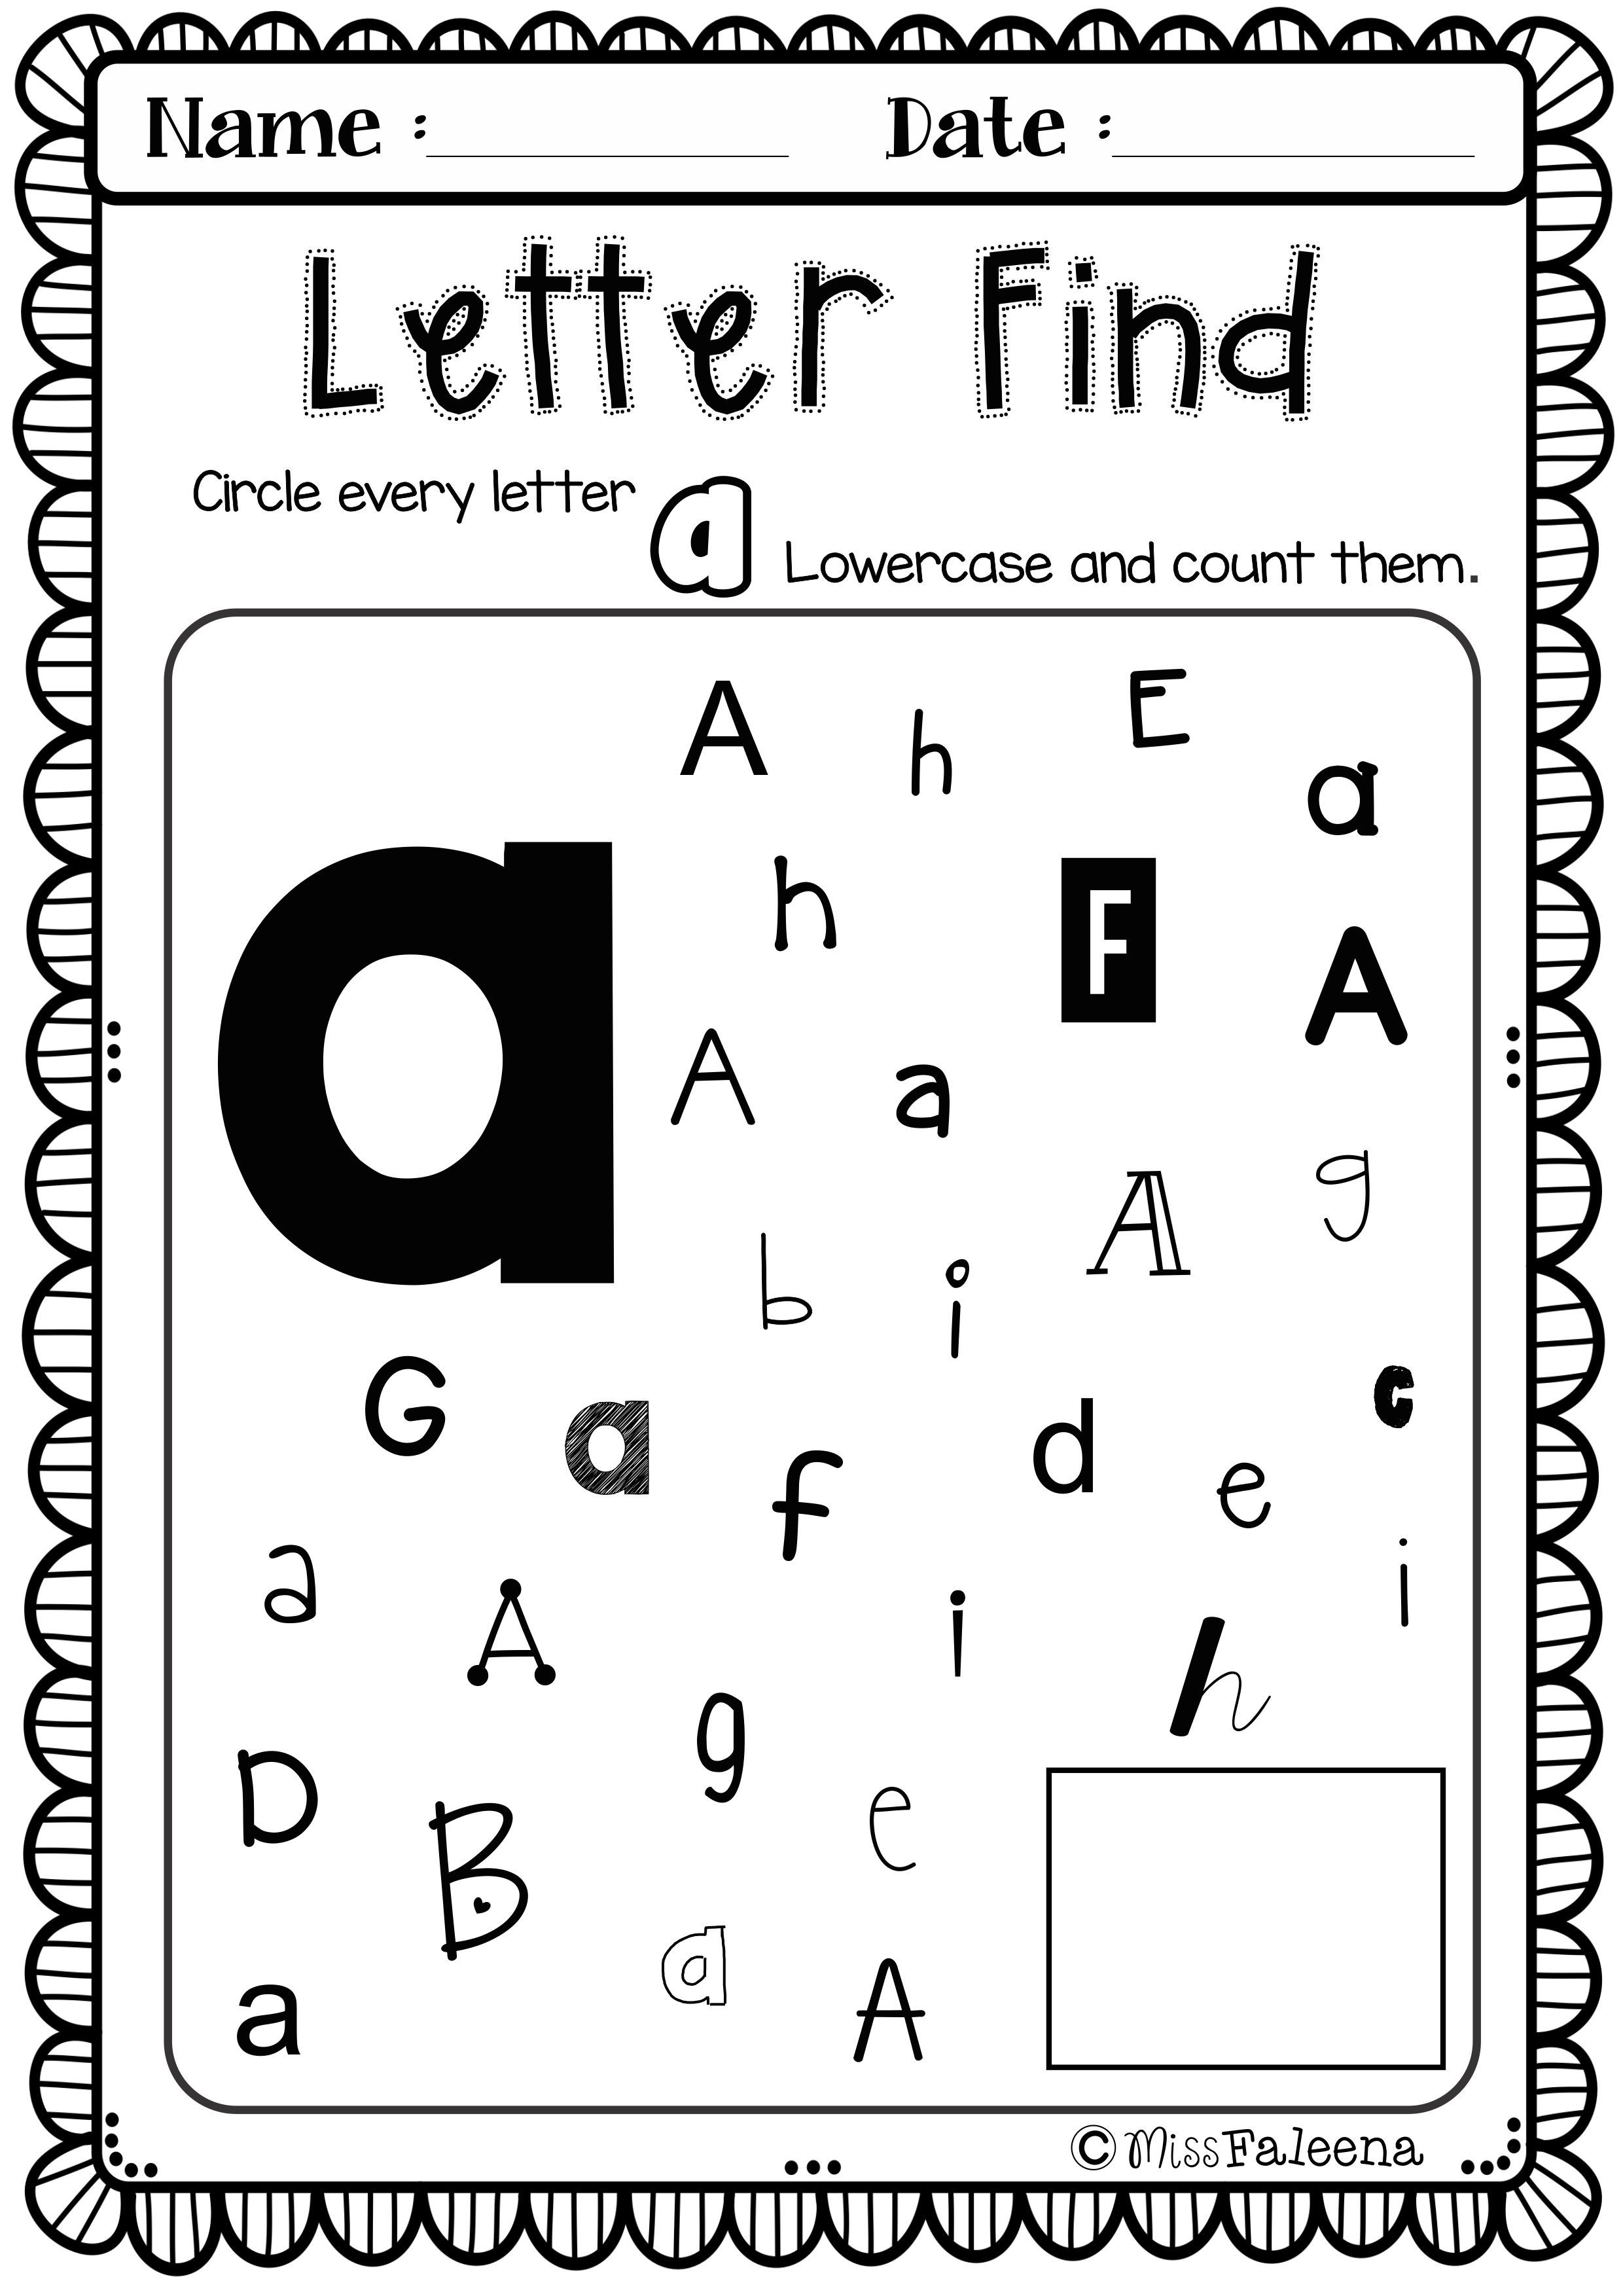 Free Alphabet Letter Of The Week A Lettering English Games For Kids Lettering Alphabet